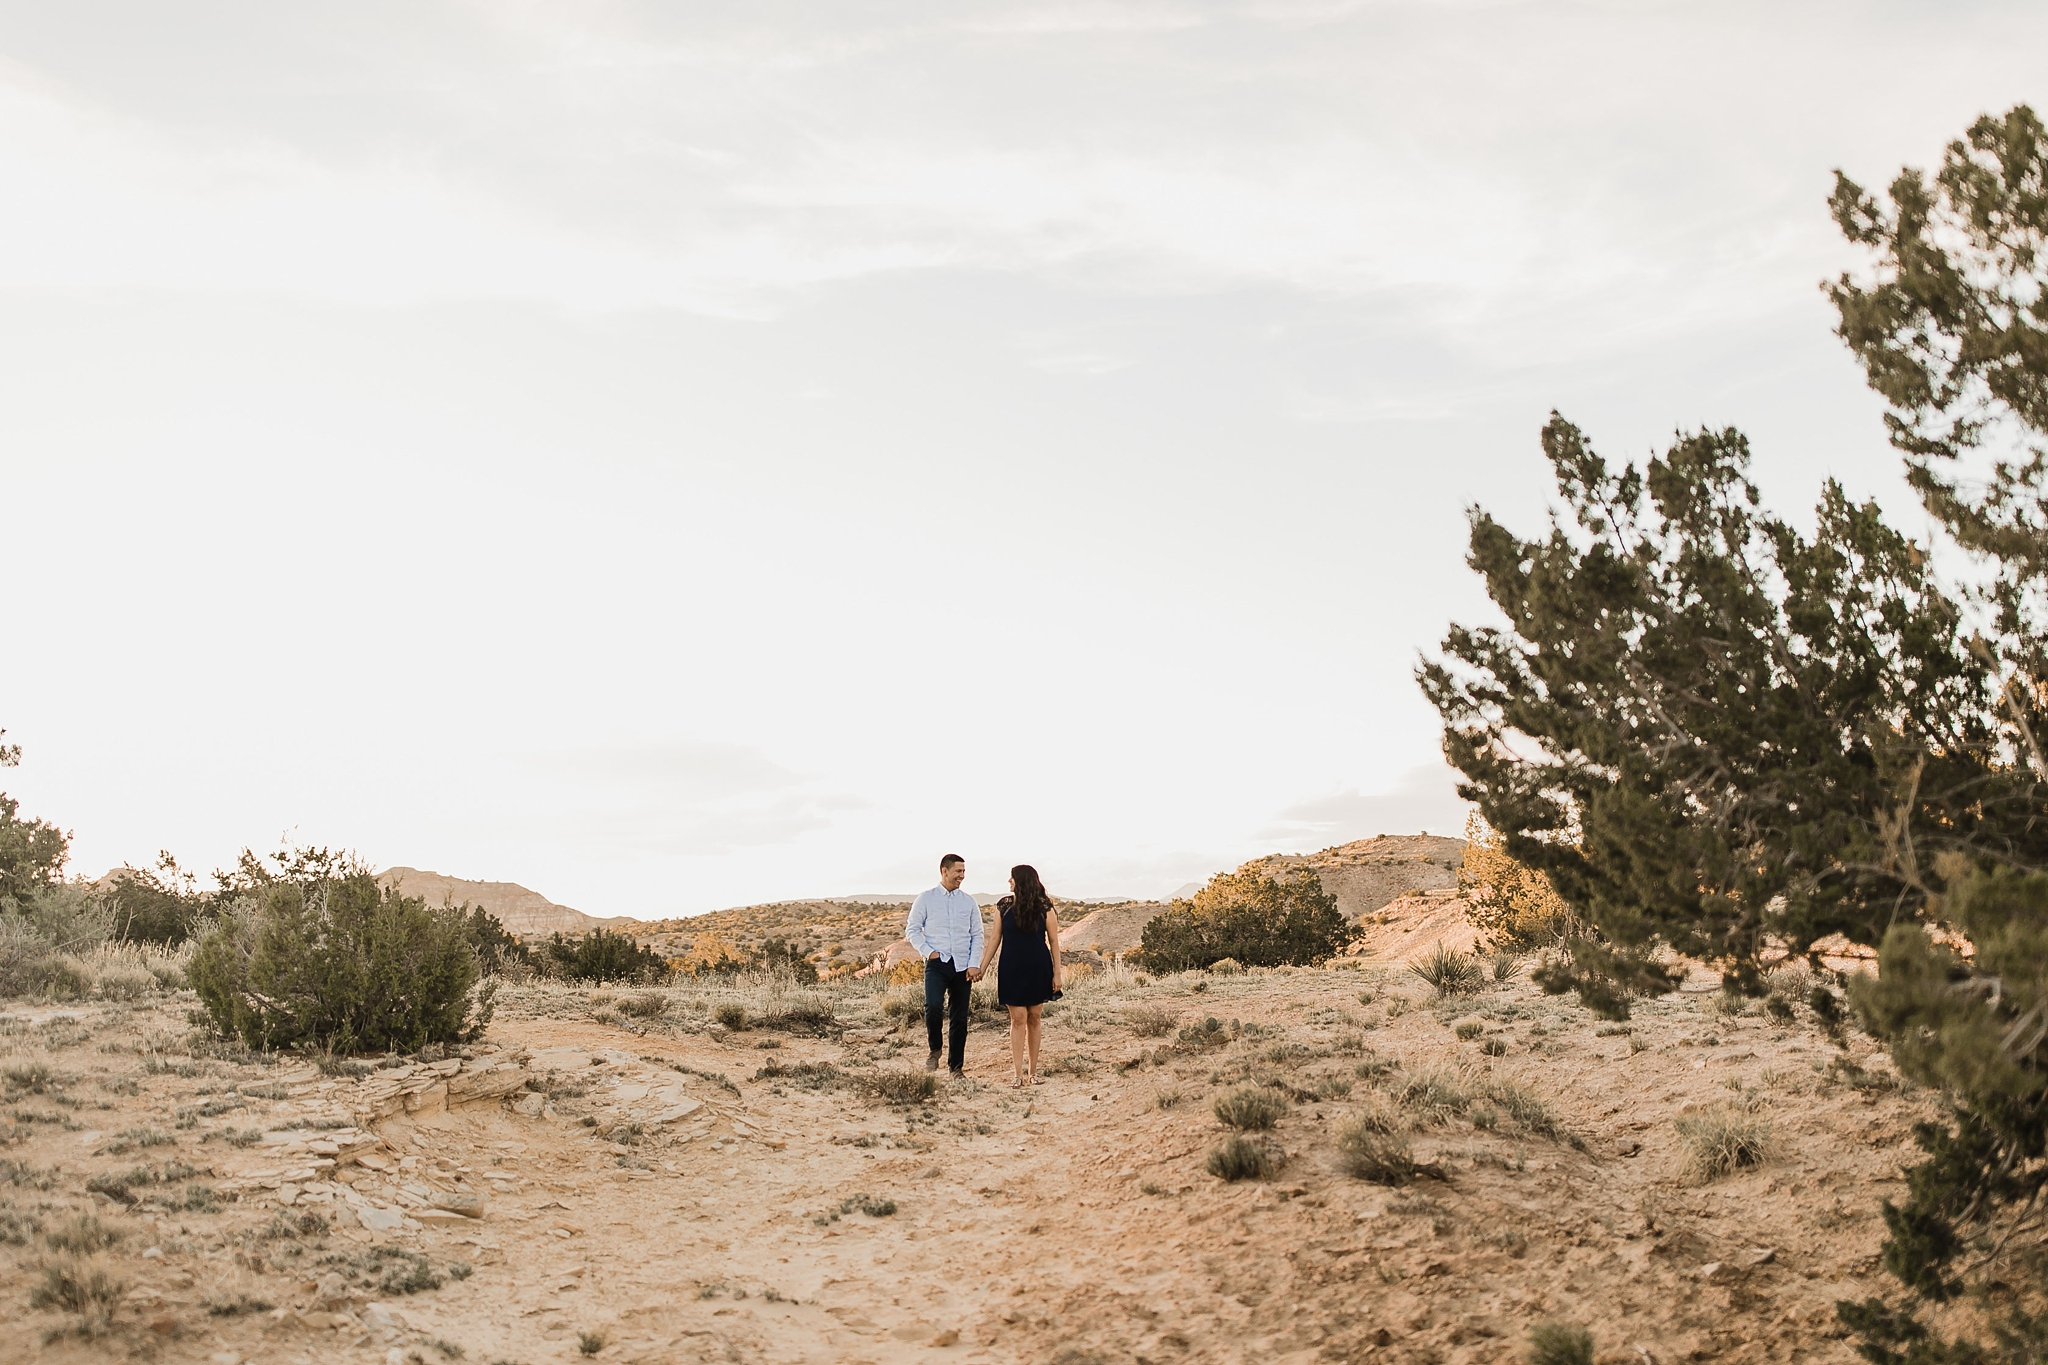 Alicia+lucia+photography+-+albuquerque+wedding+photographer+-+santa+fe+wedding+photography+-+new+mexico+wedding+photographer+-+new+mexico+wedding+-+new+mexico+engagement+-+white+mesa+engagement+-+desert+engagement_0015.jpg